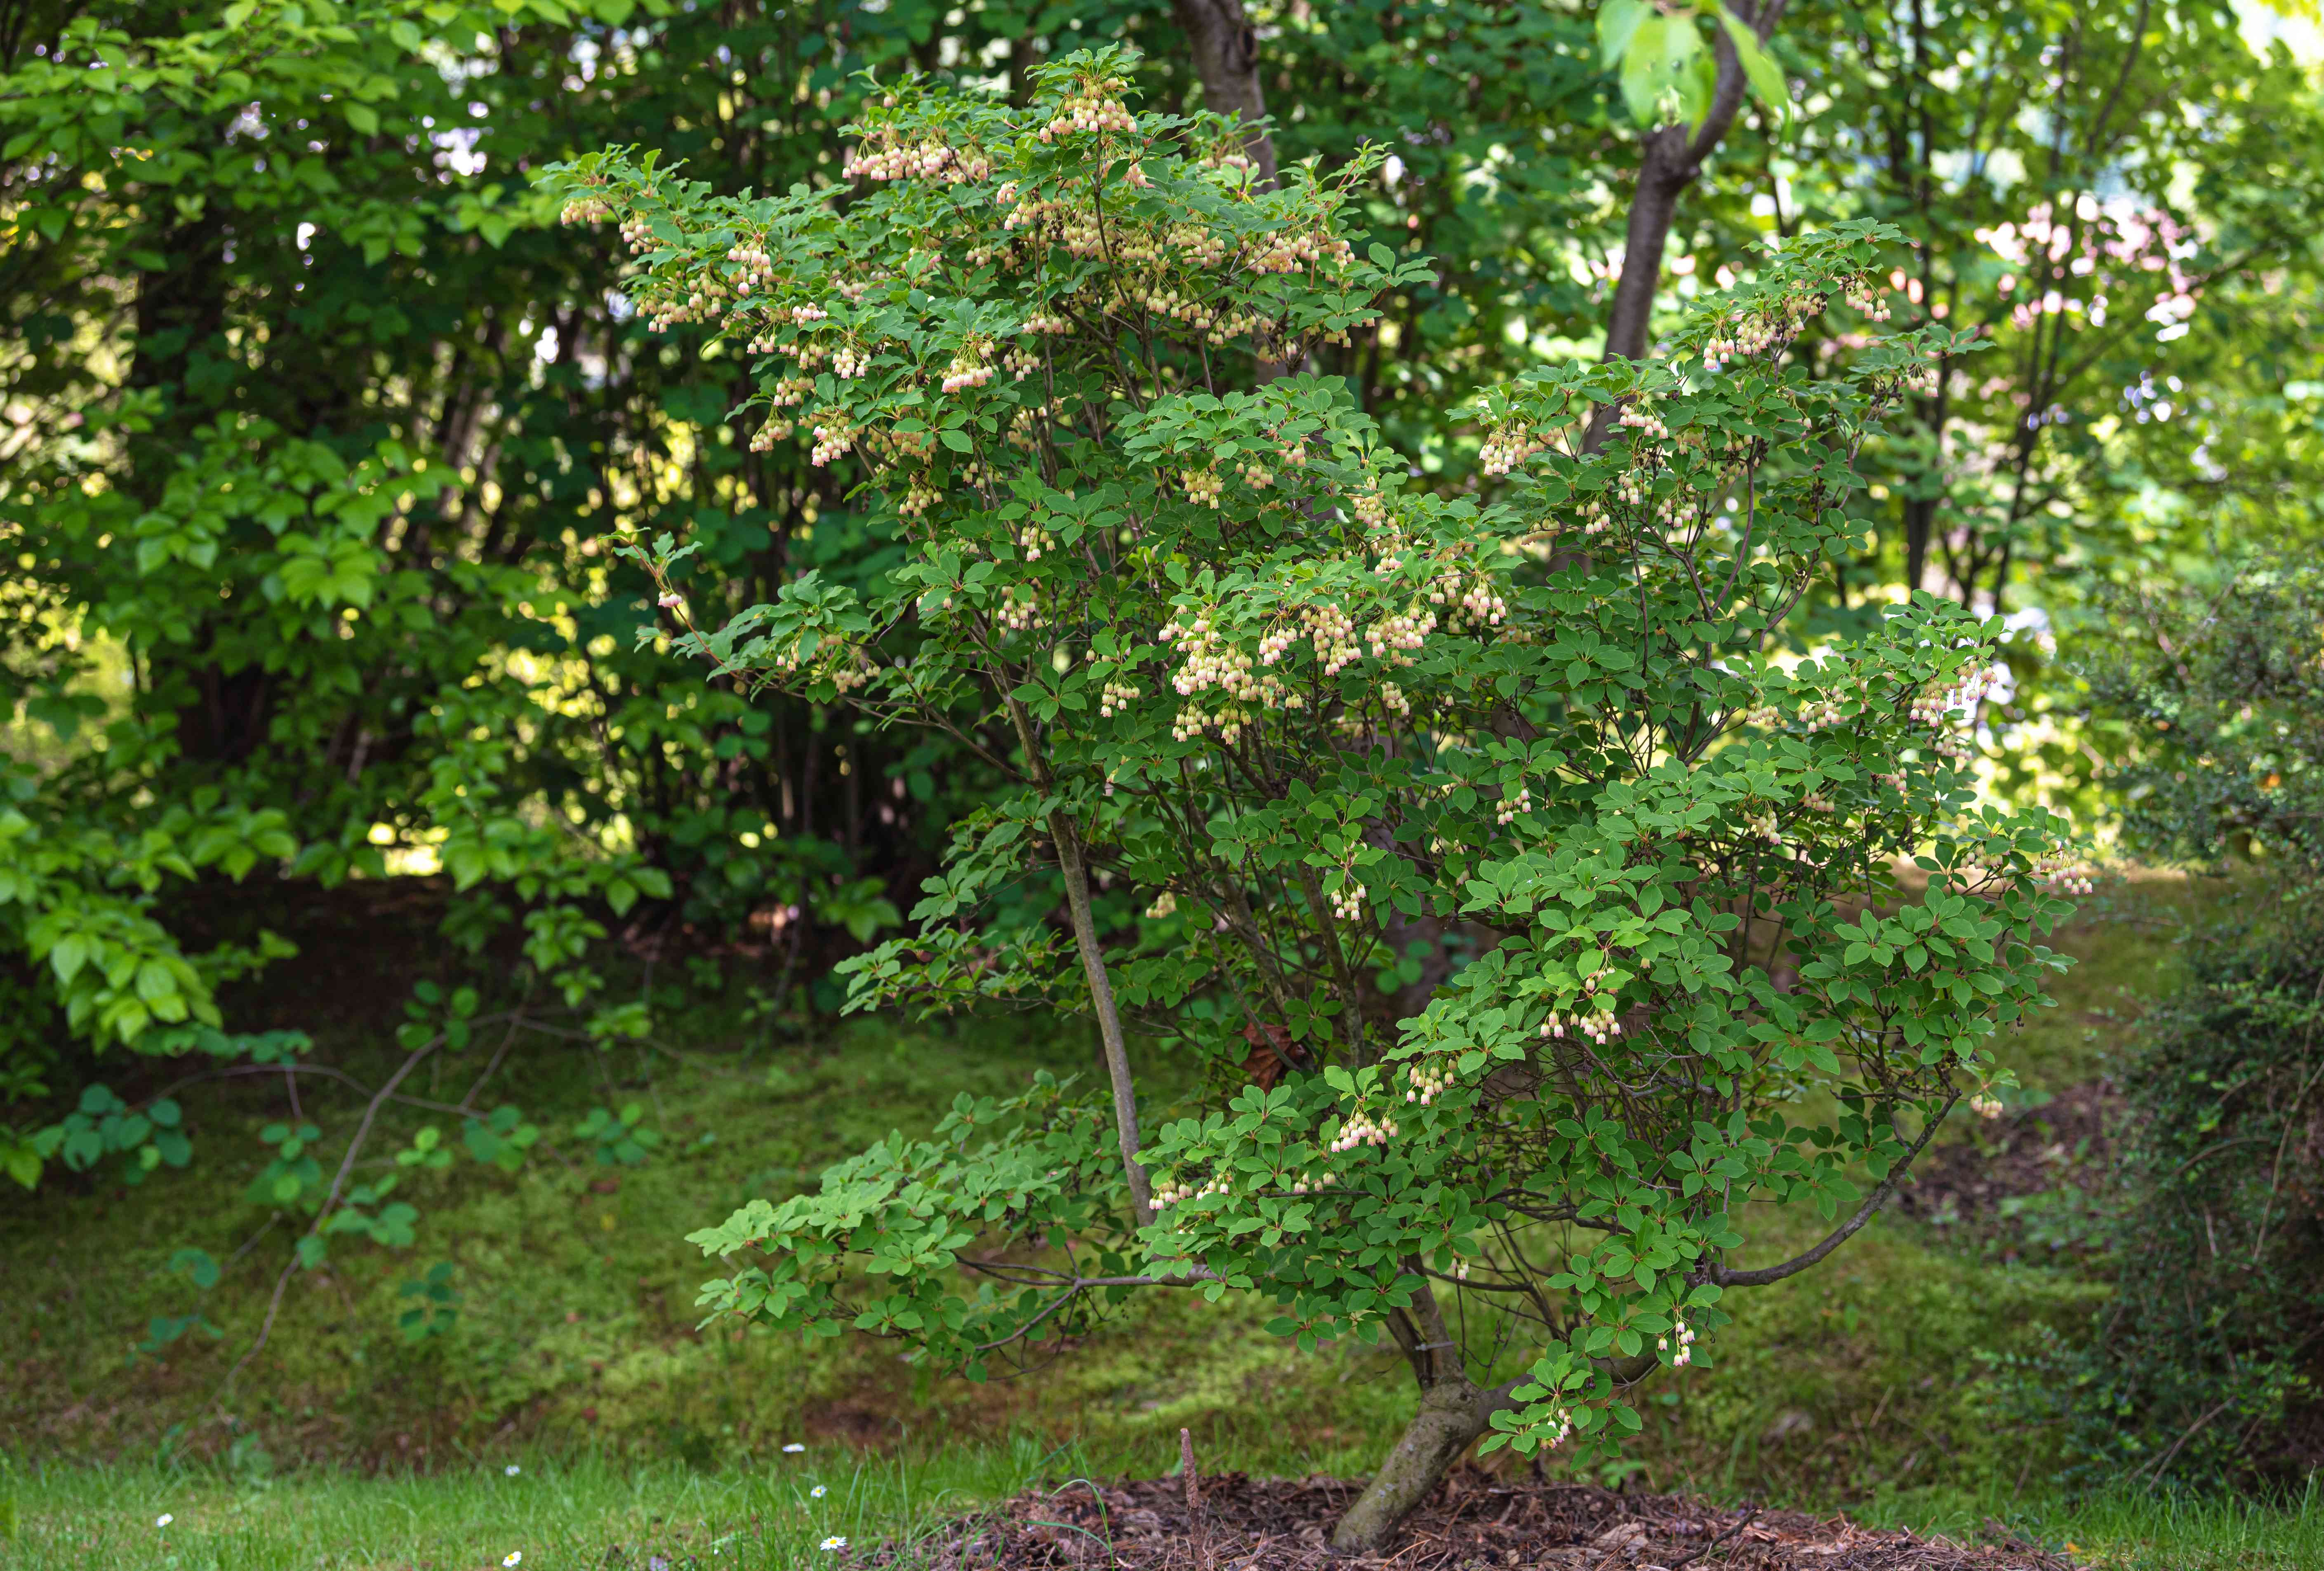 Red vein enkianthus shrub with tall trunk and small white flowers